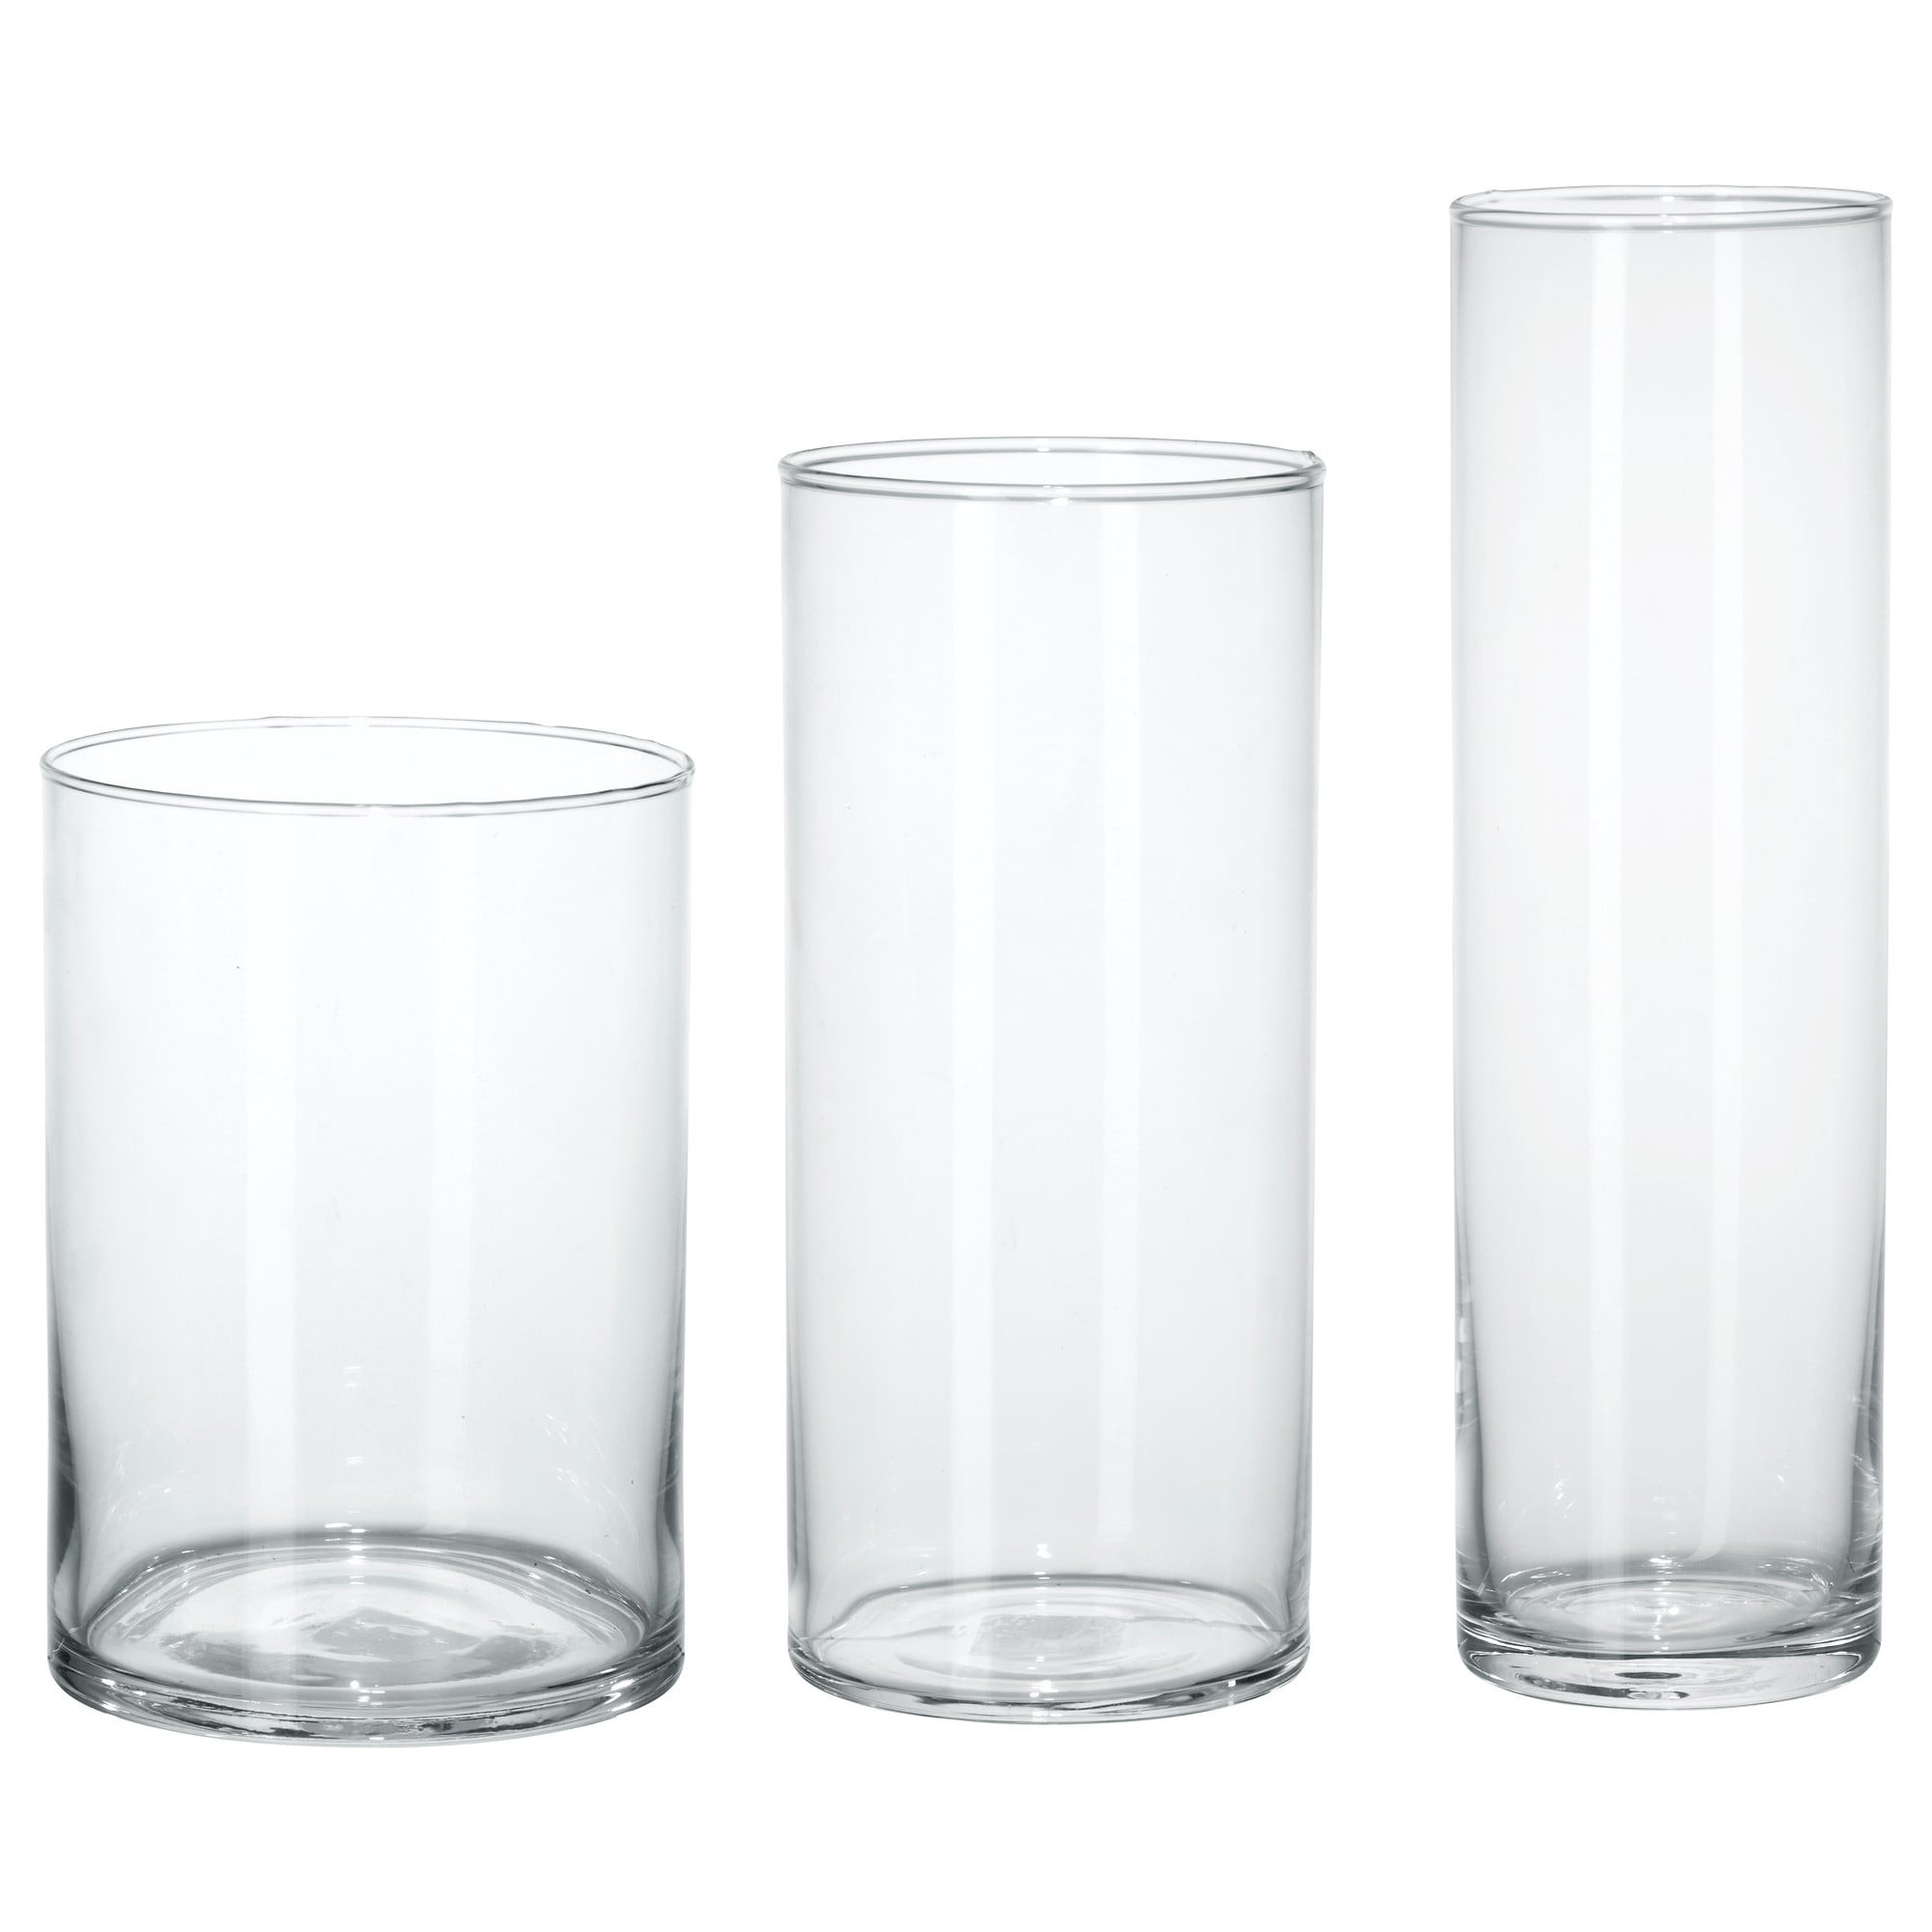 Clear Plastic Cylinder Vases wholesale Of Cylinder Vase Set Of 3 Ikea with English Frana§ais